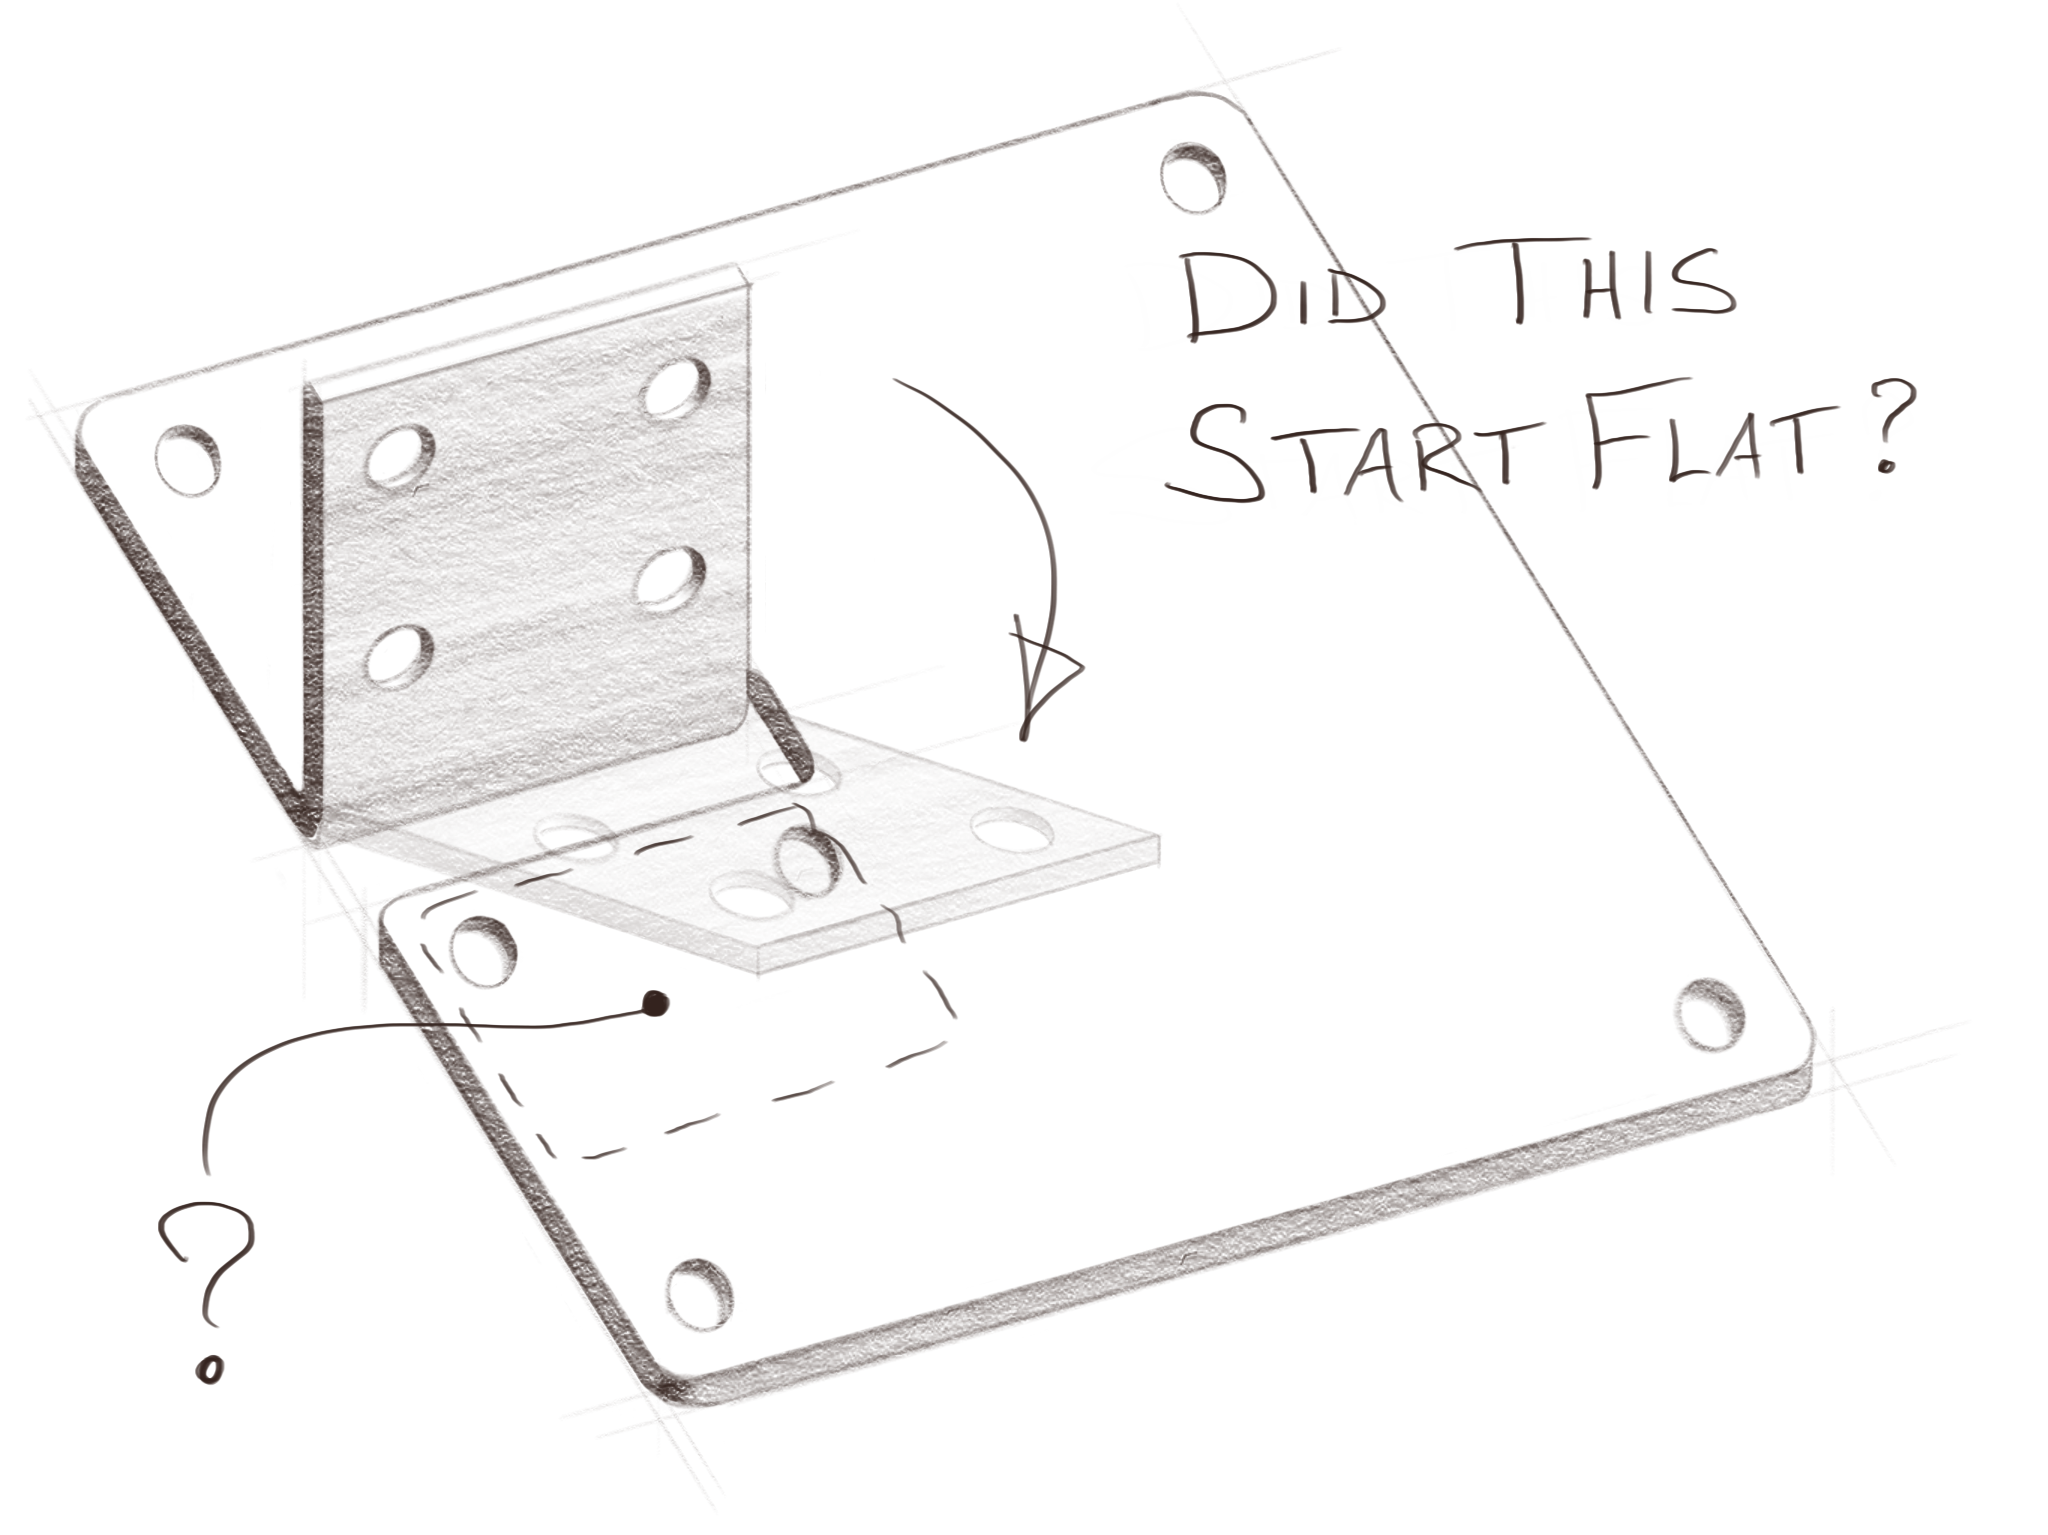 Sheet metal needs to be able to flatten without overlapping if a bend or flange is incorporated.